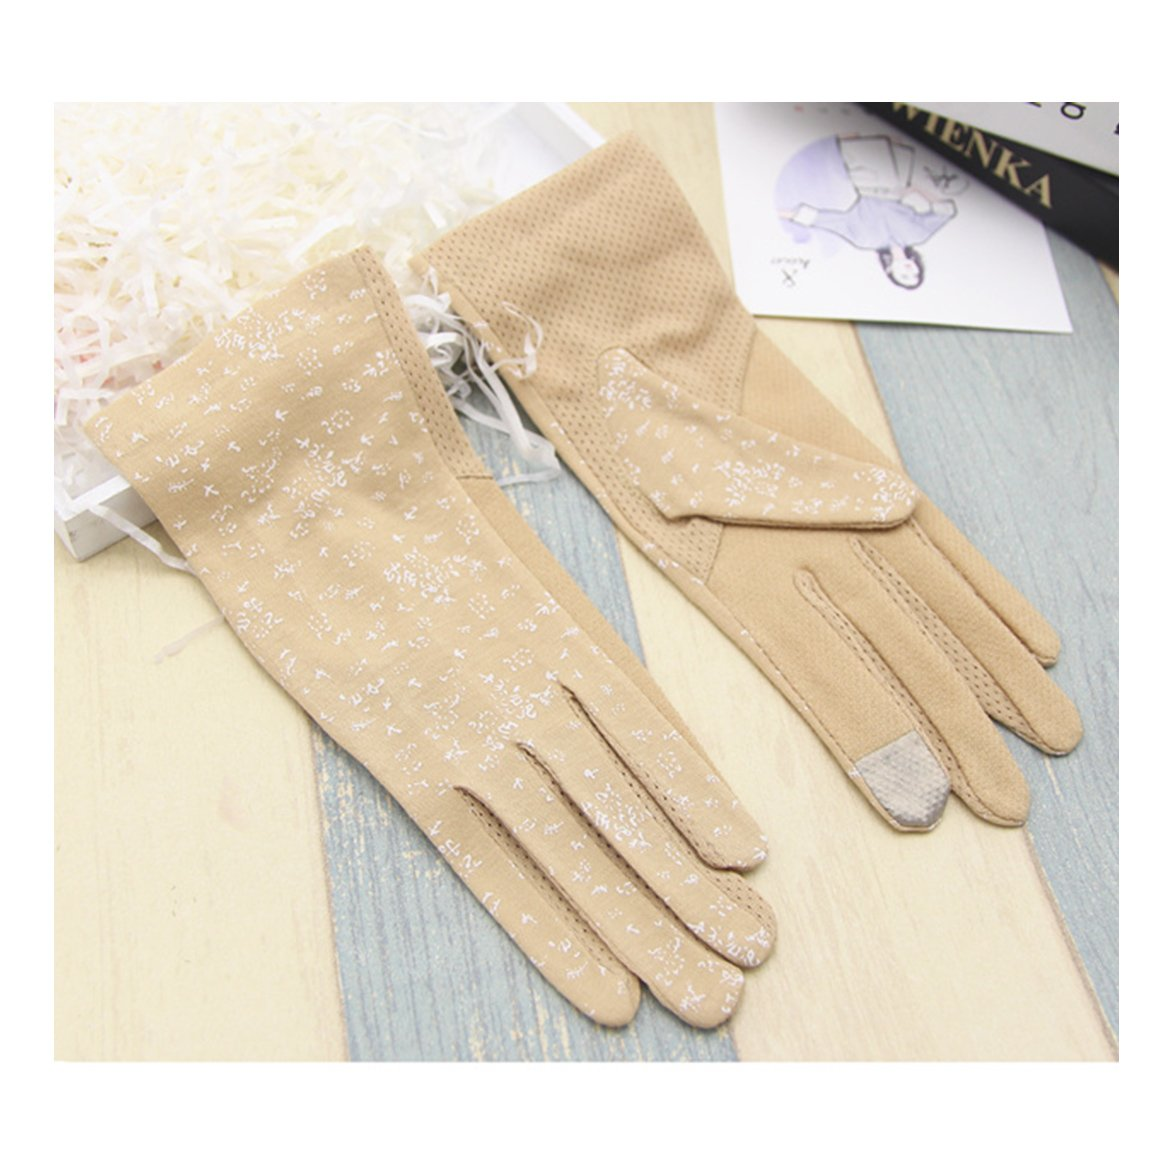 Ladies Summer Wrist Full Fingers Sun Protection Outdoor Driving Touchscreen Gloves (Khaki, One size)